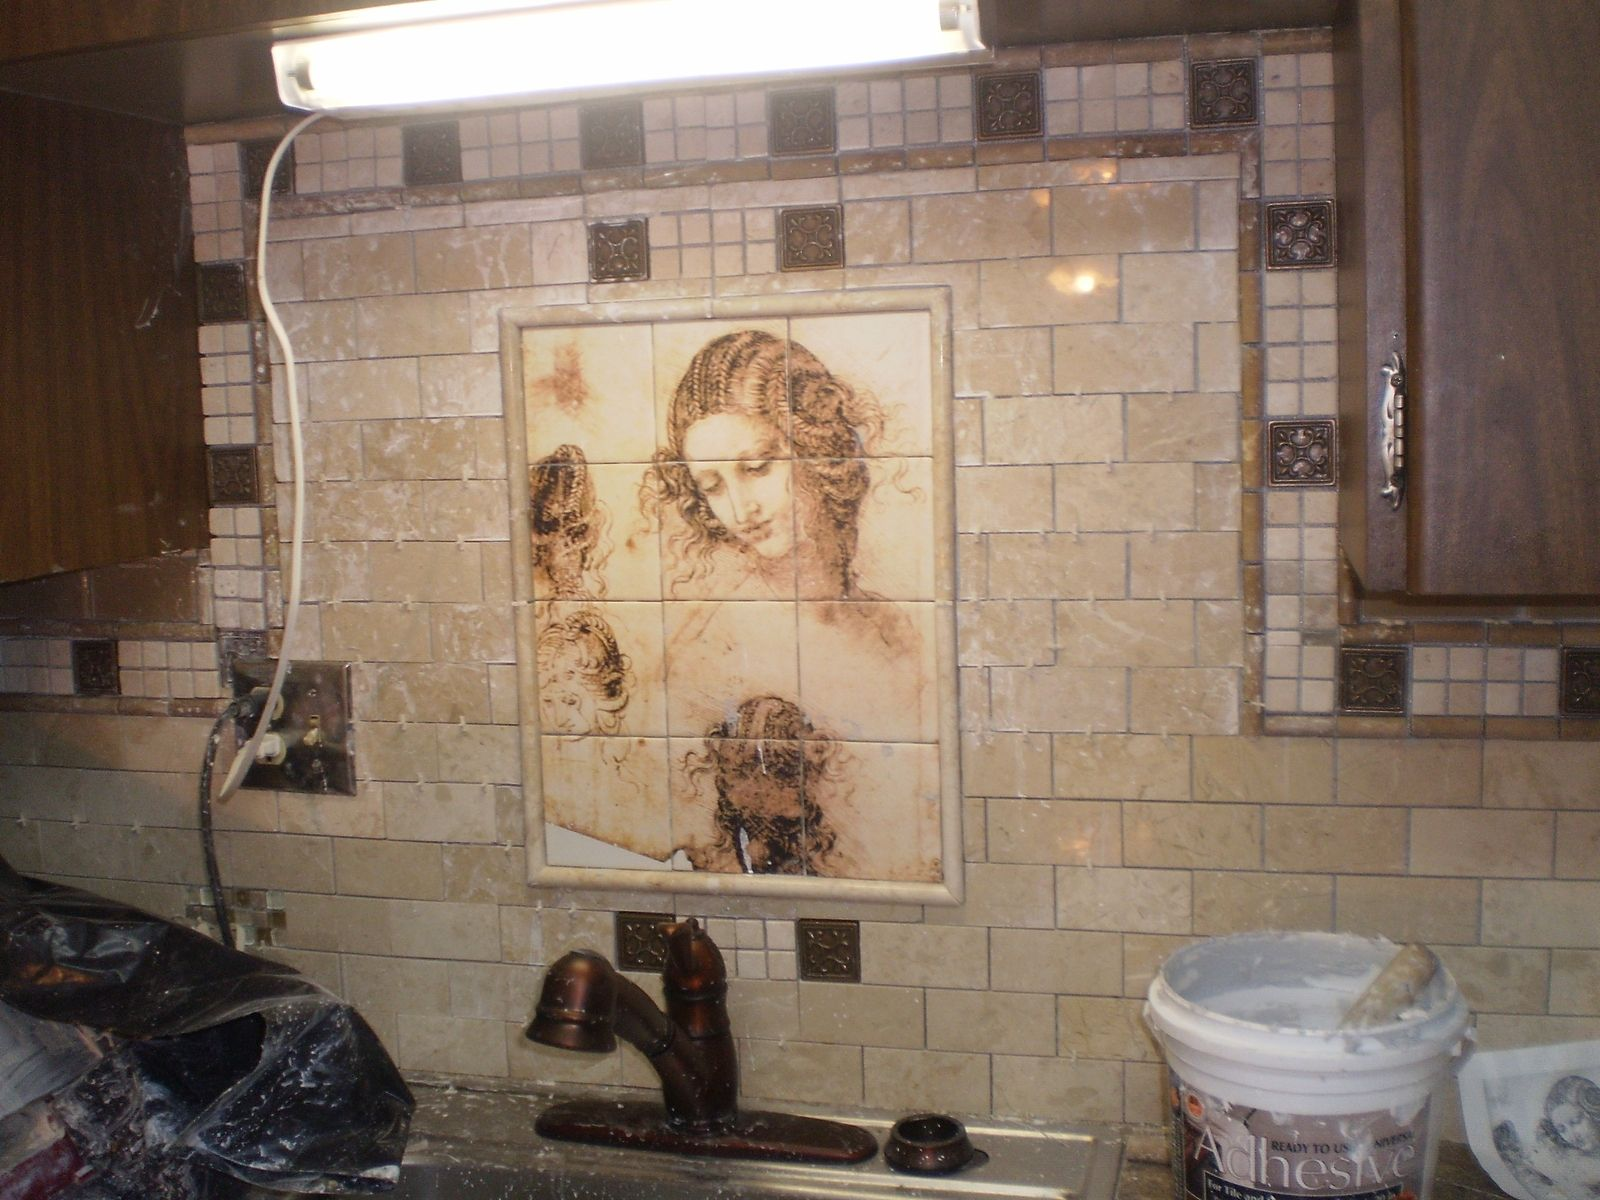 Handmade ceramic or marble kitchen tile mural by flekman for Custom photo tile mural